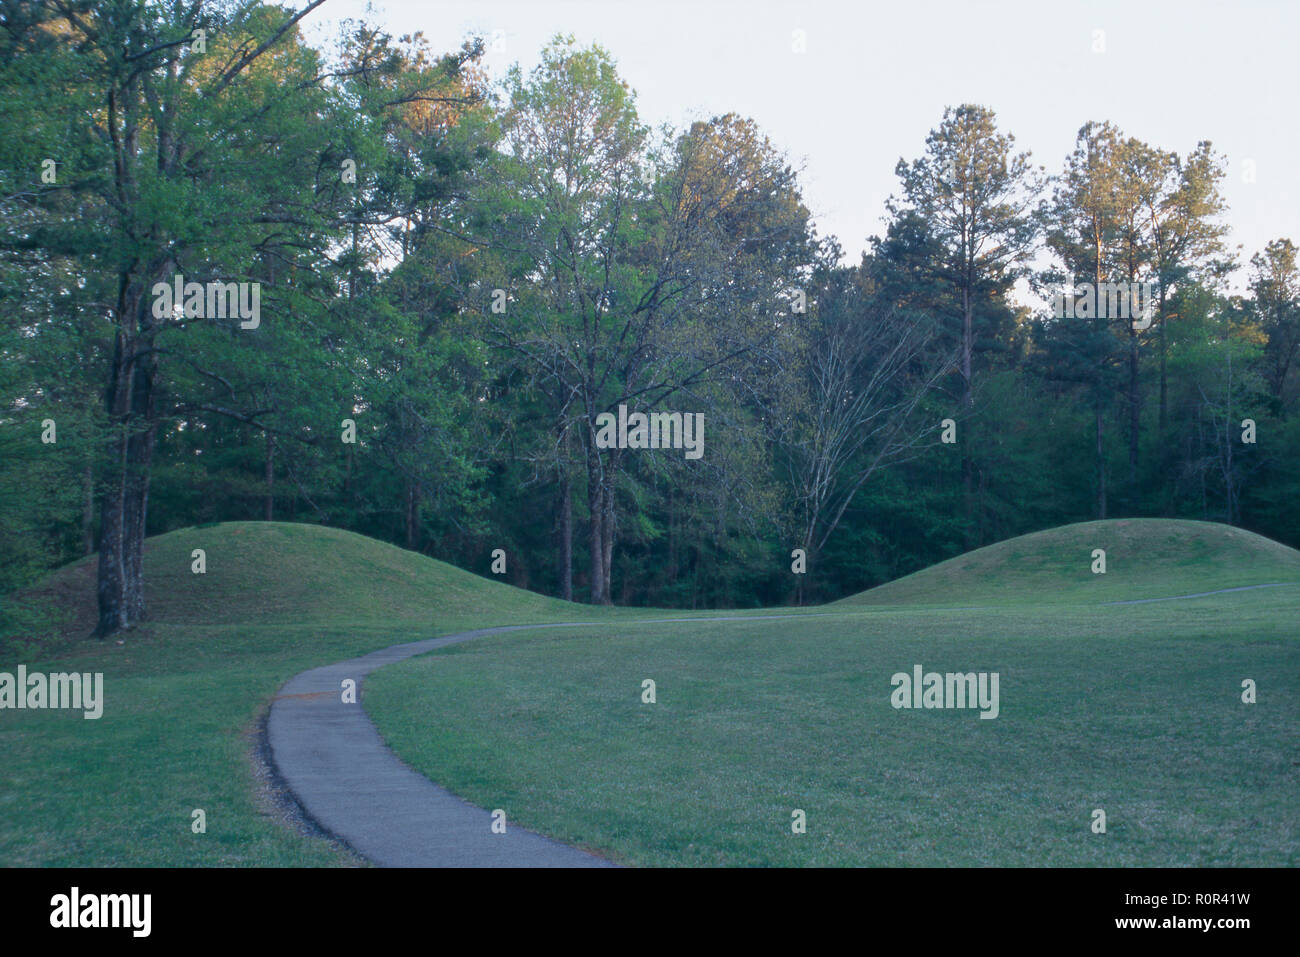 Bynum Mounds, dated 100 BC-200 AD, Natchez Trace, Mississippi. Photograph - Stock Image